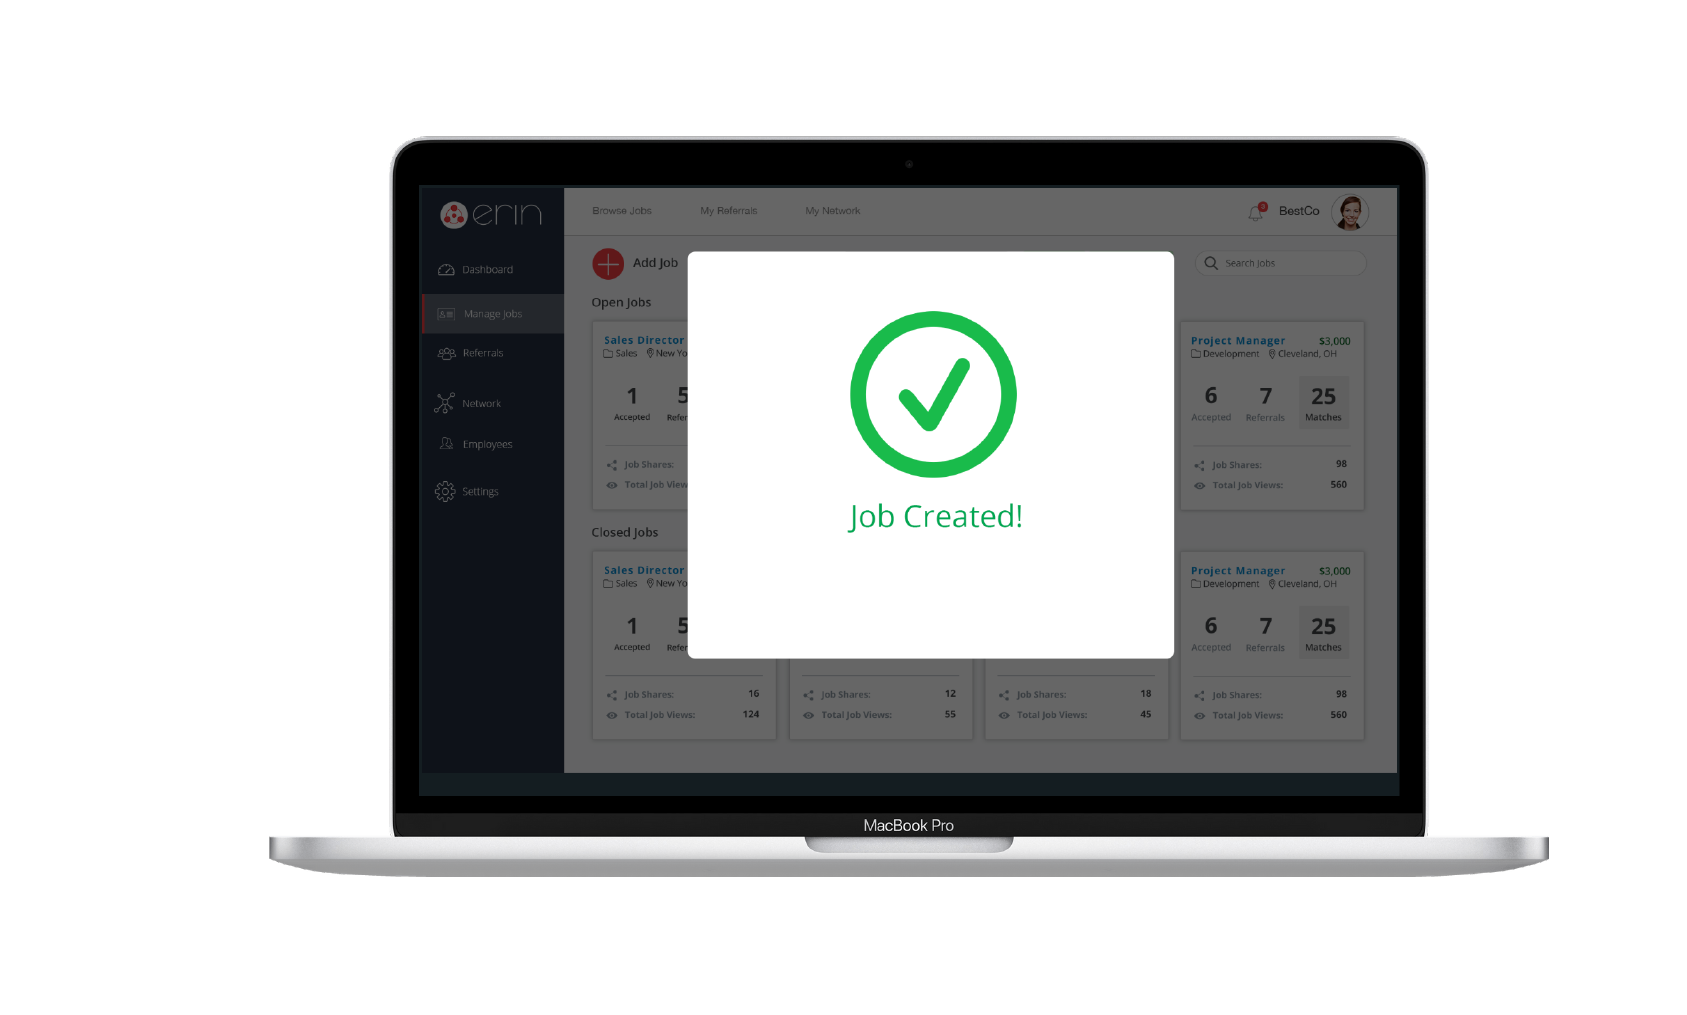 ERIN Employee Referral Software Platform